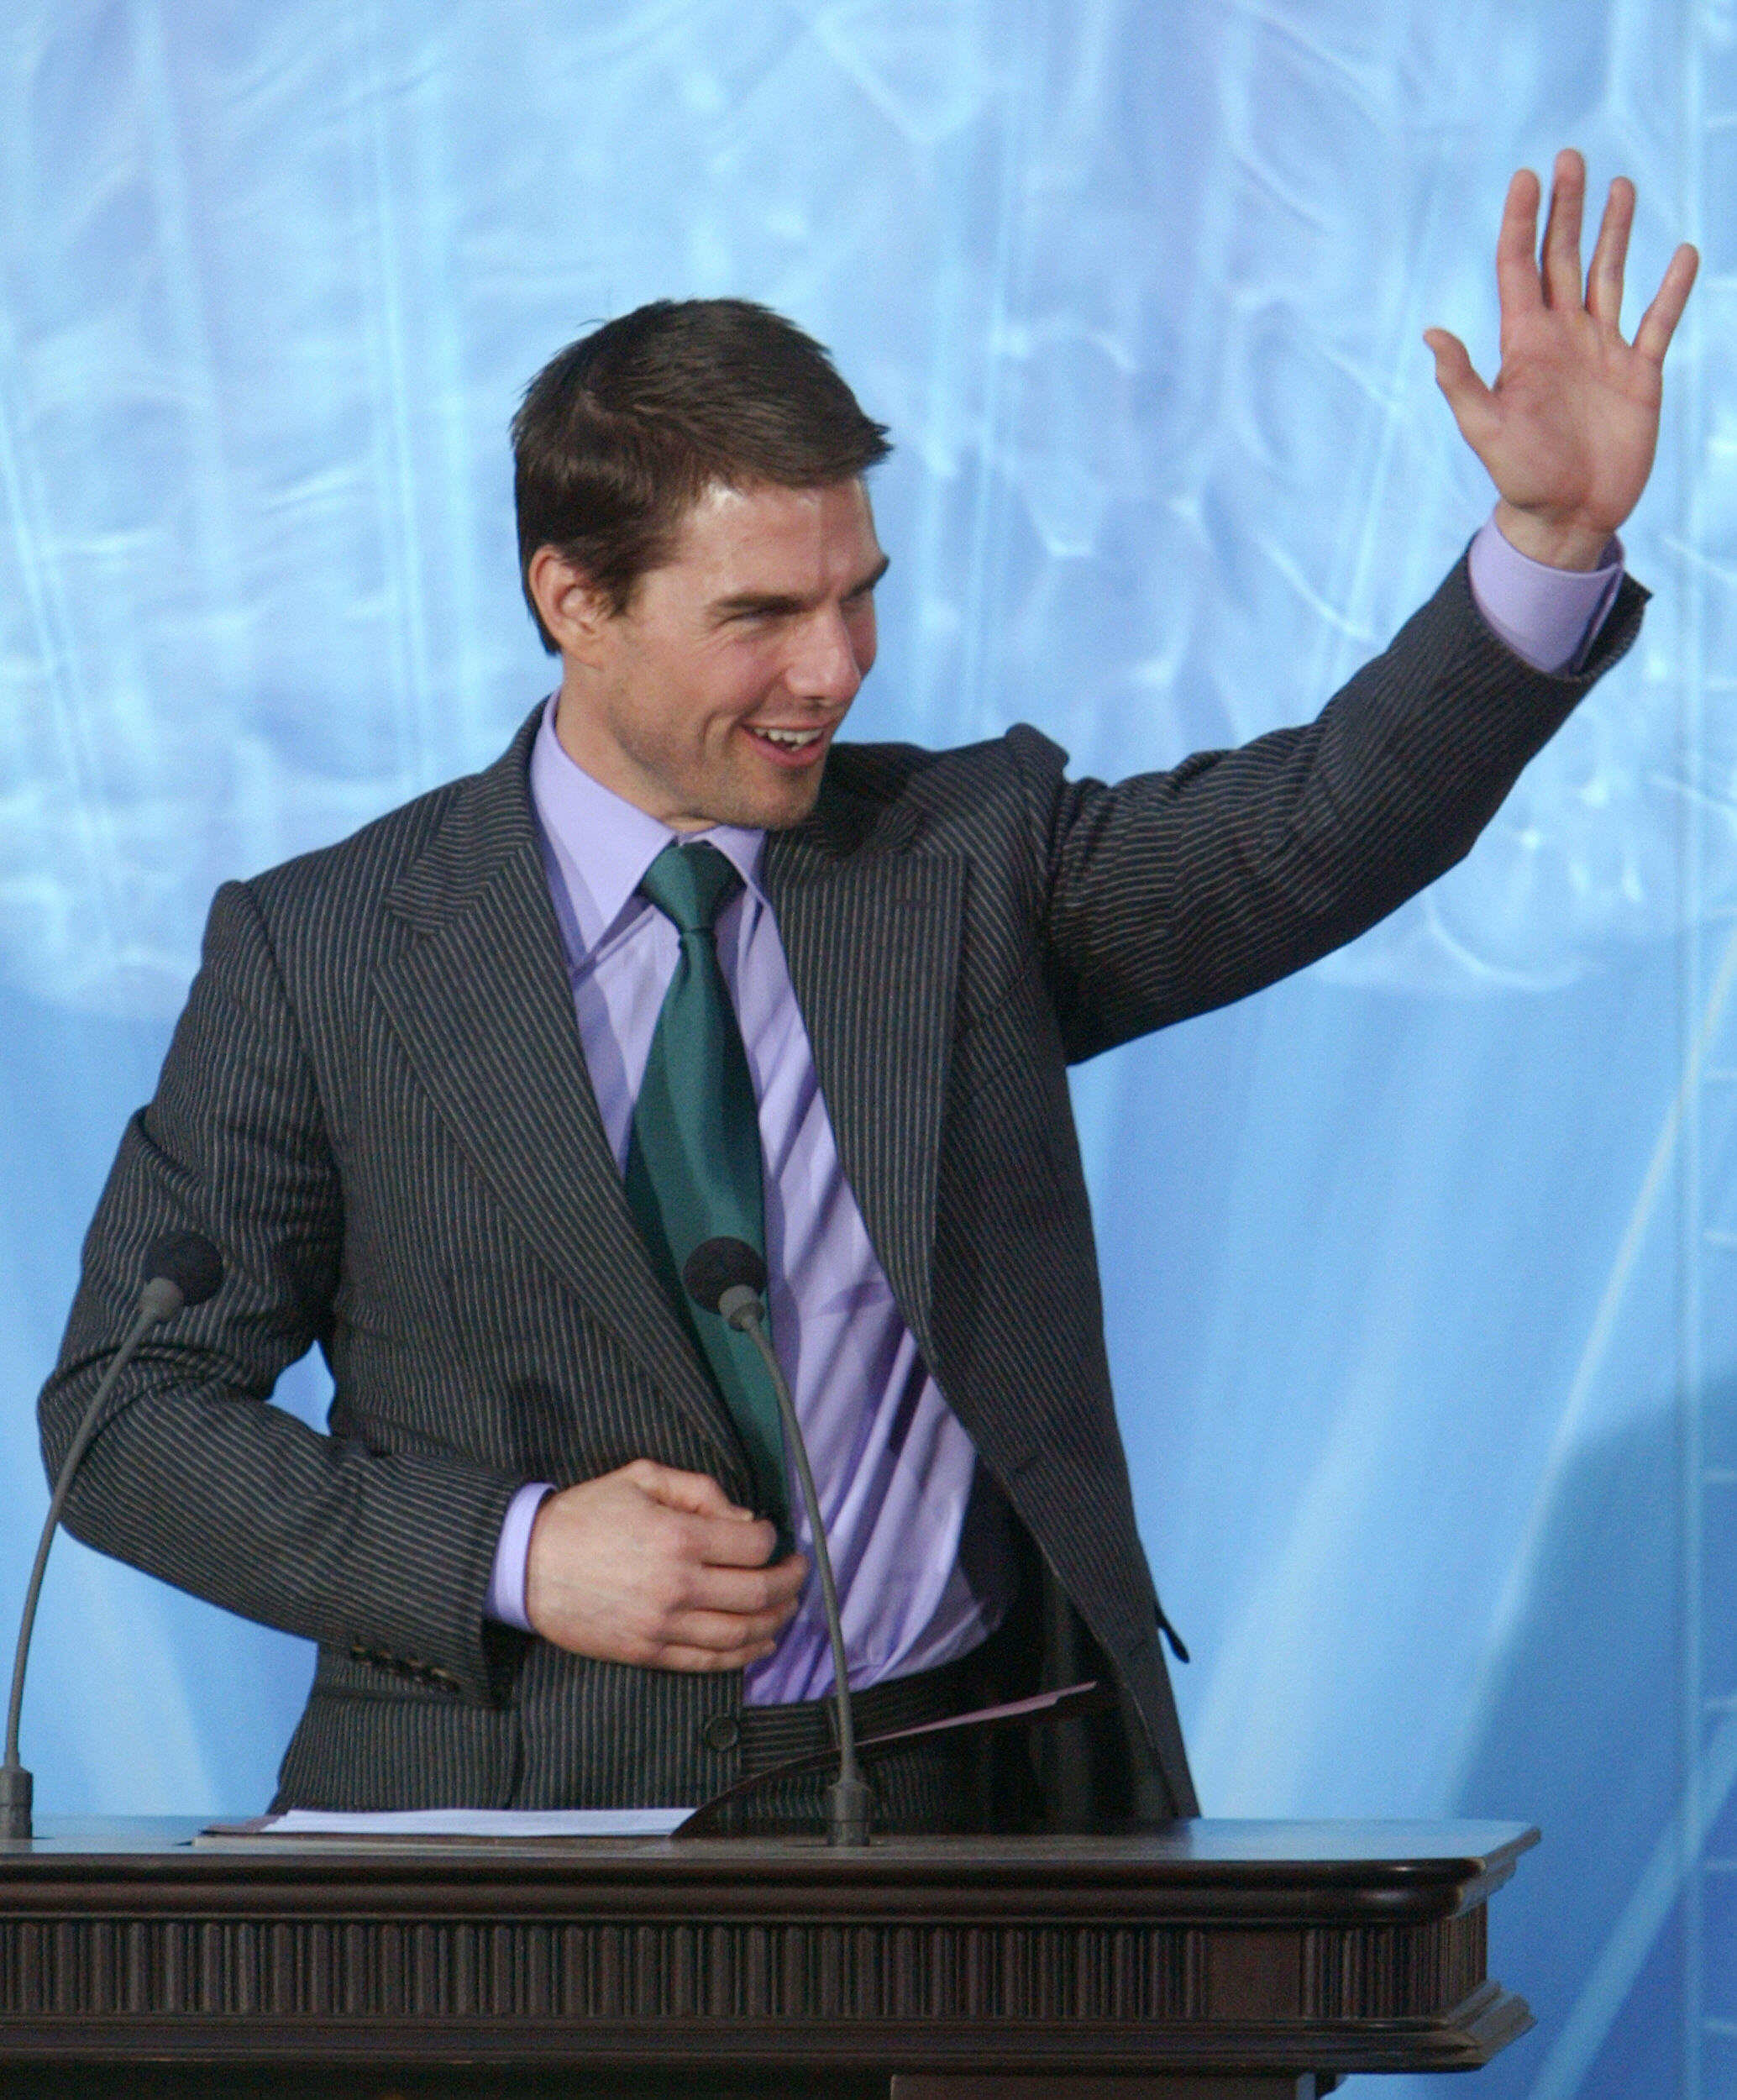 Tom Cruise waves during the inauguration of the Church of Scientology